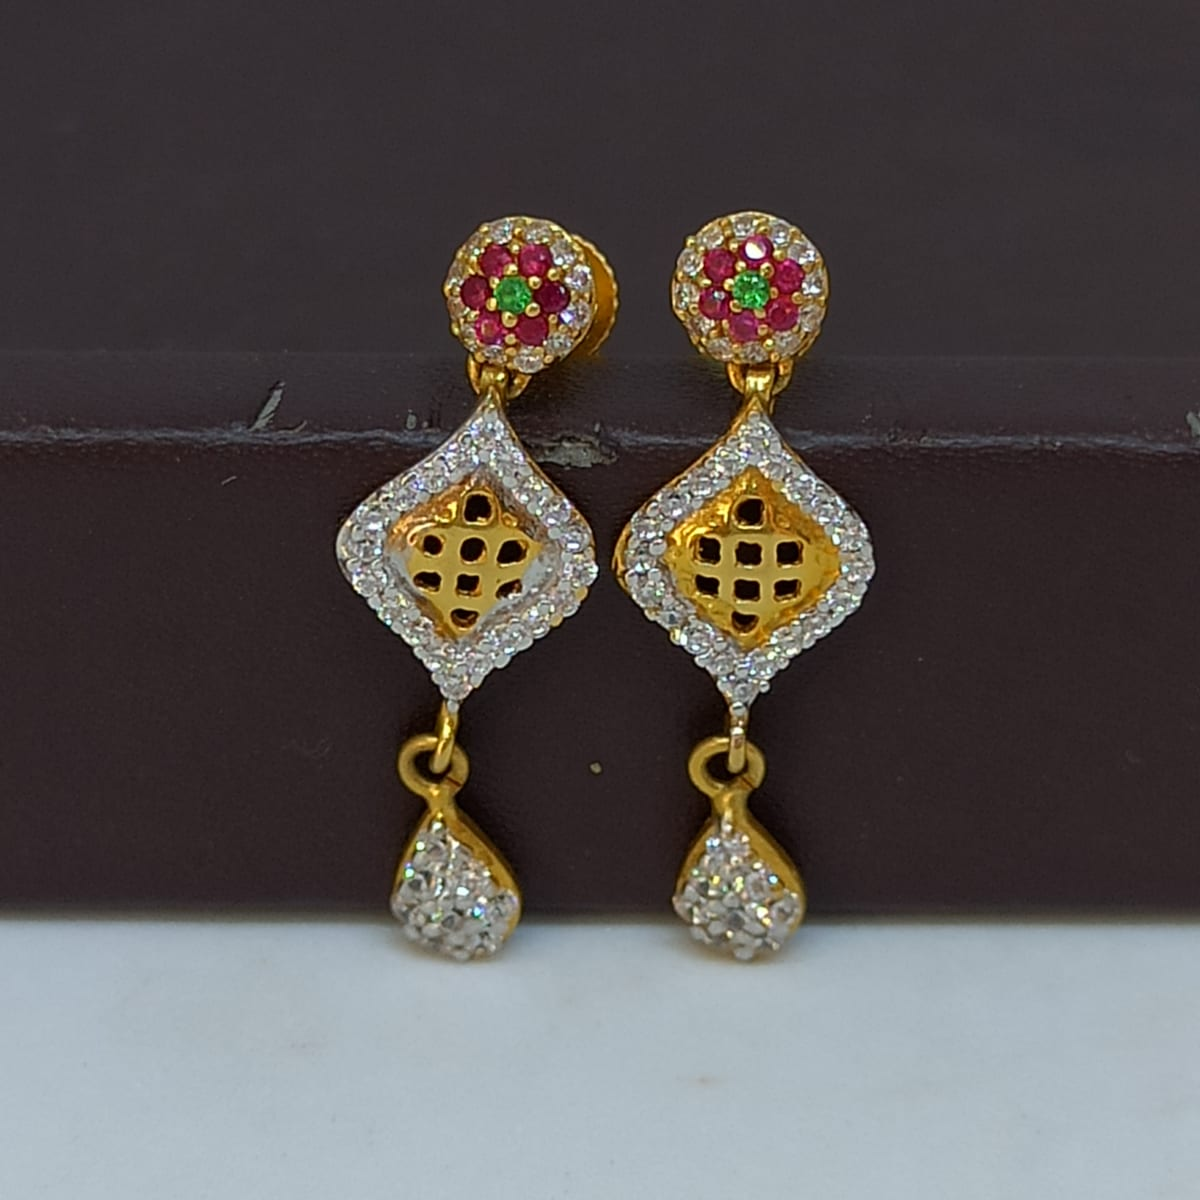 Jali Cz Earring For Her